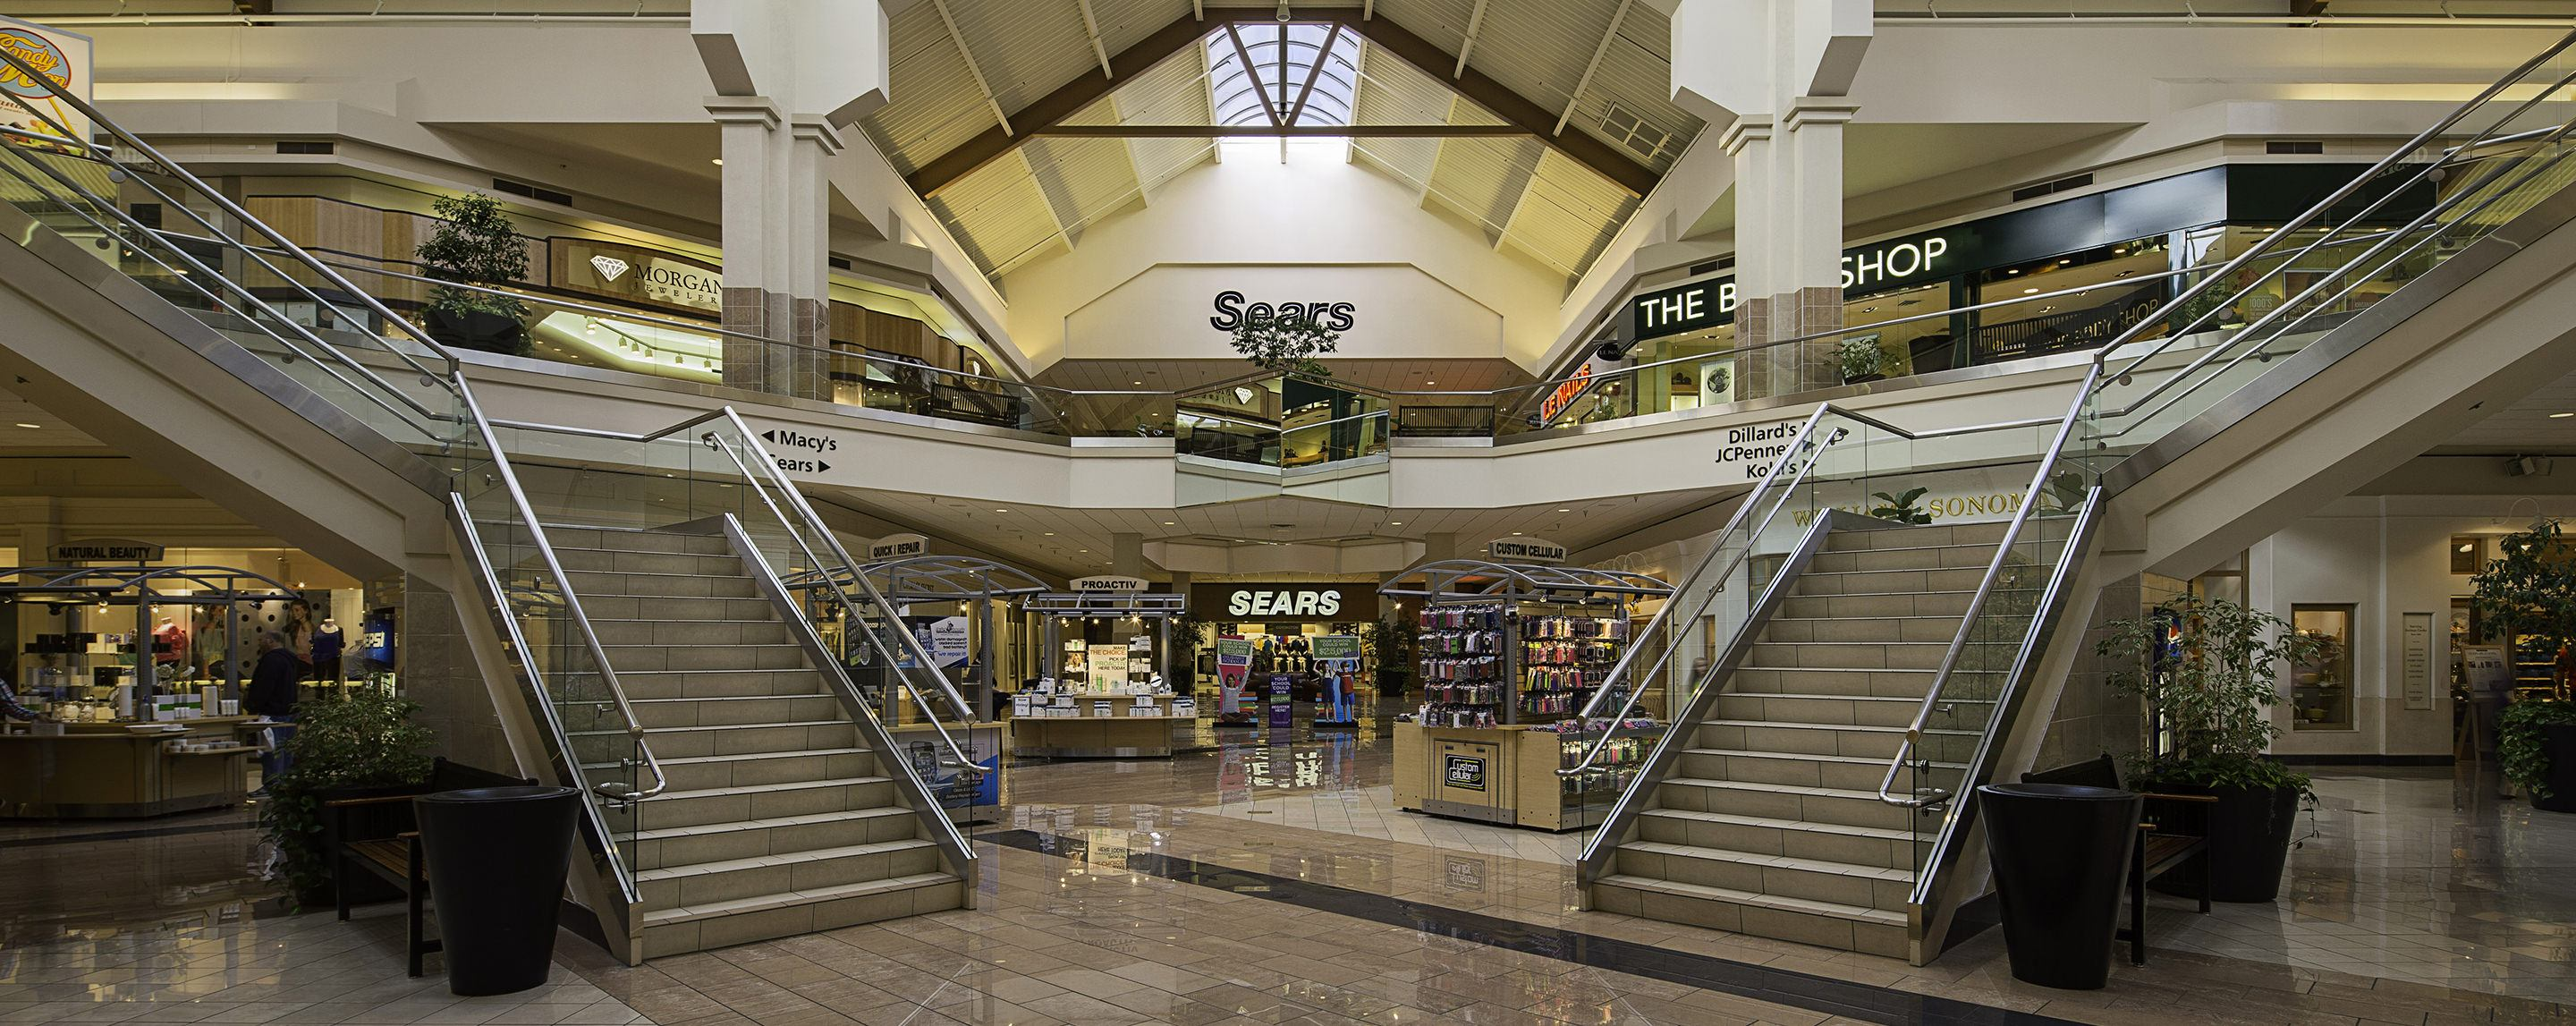 An indoor shopping mall with 2 staircases and a Sears visible.